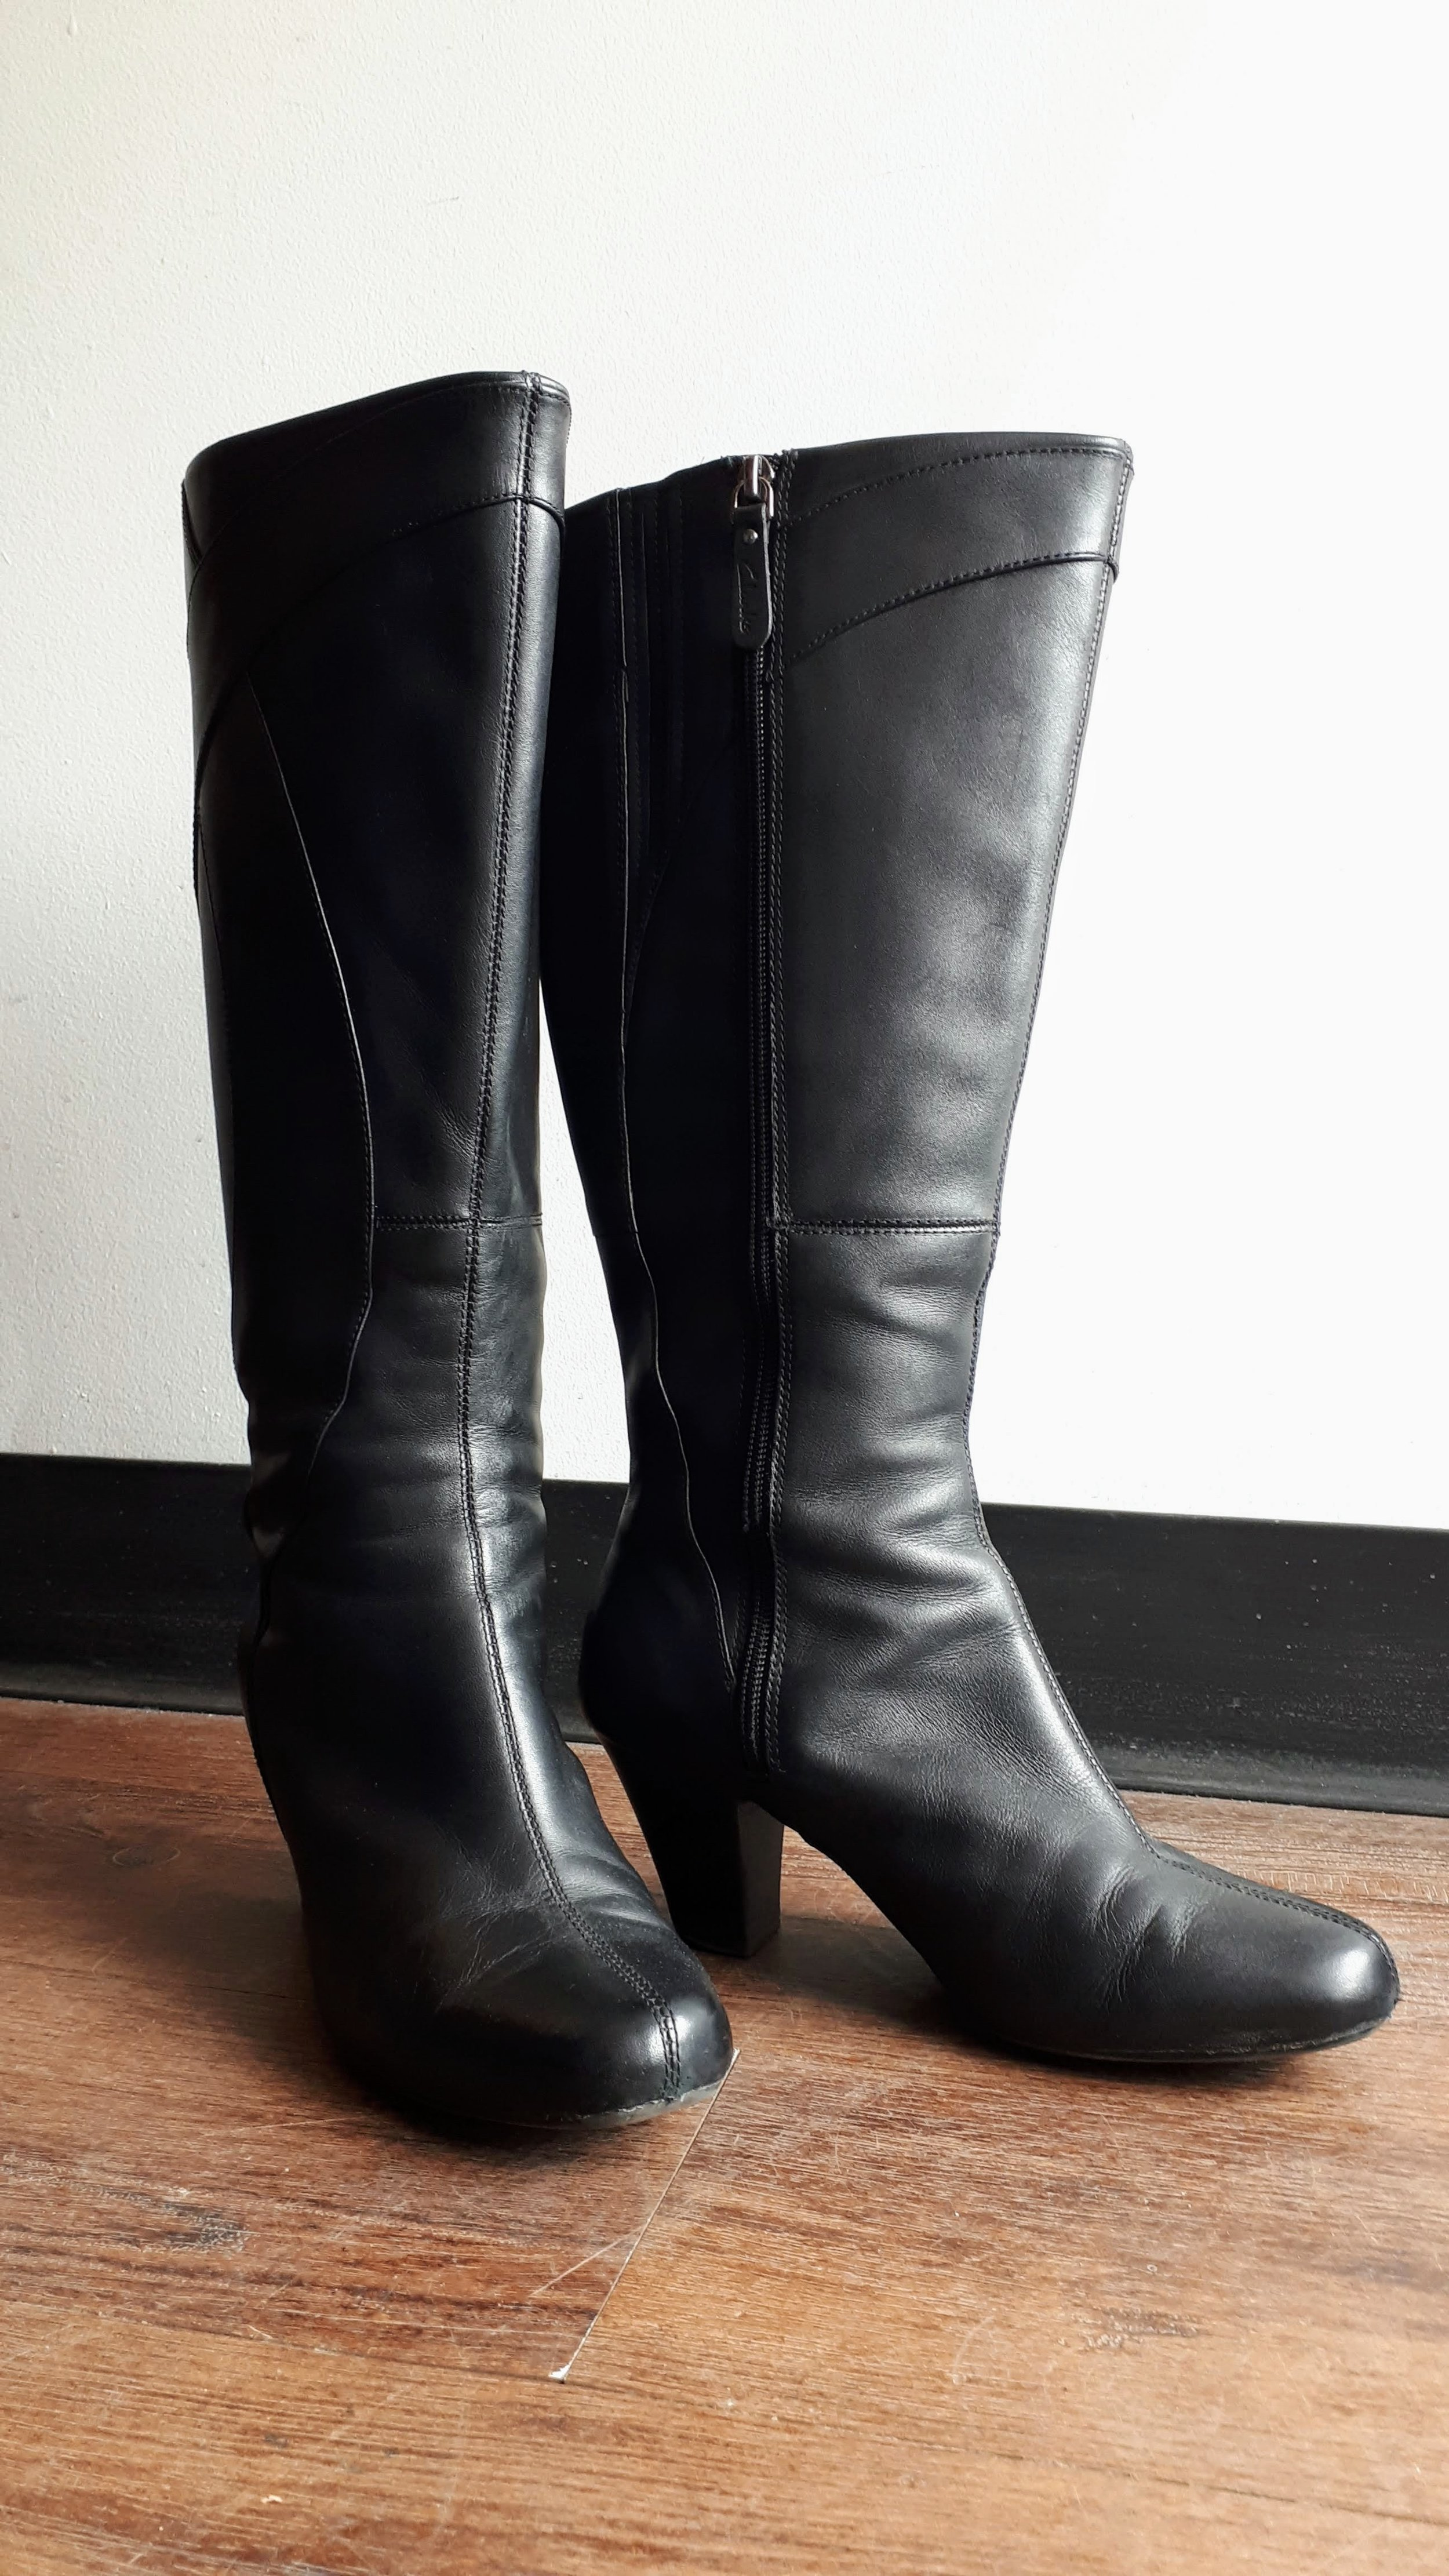 Clarks boots; S8, $65